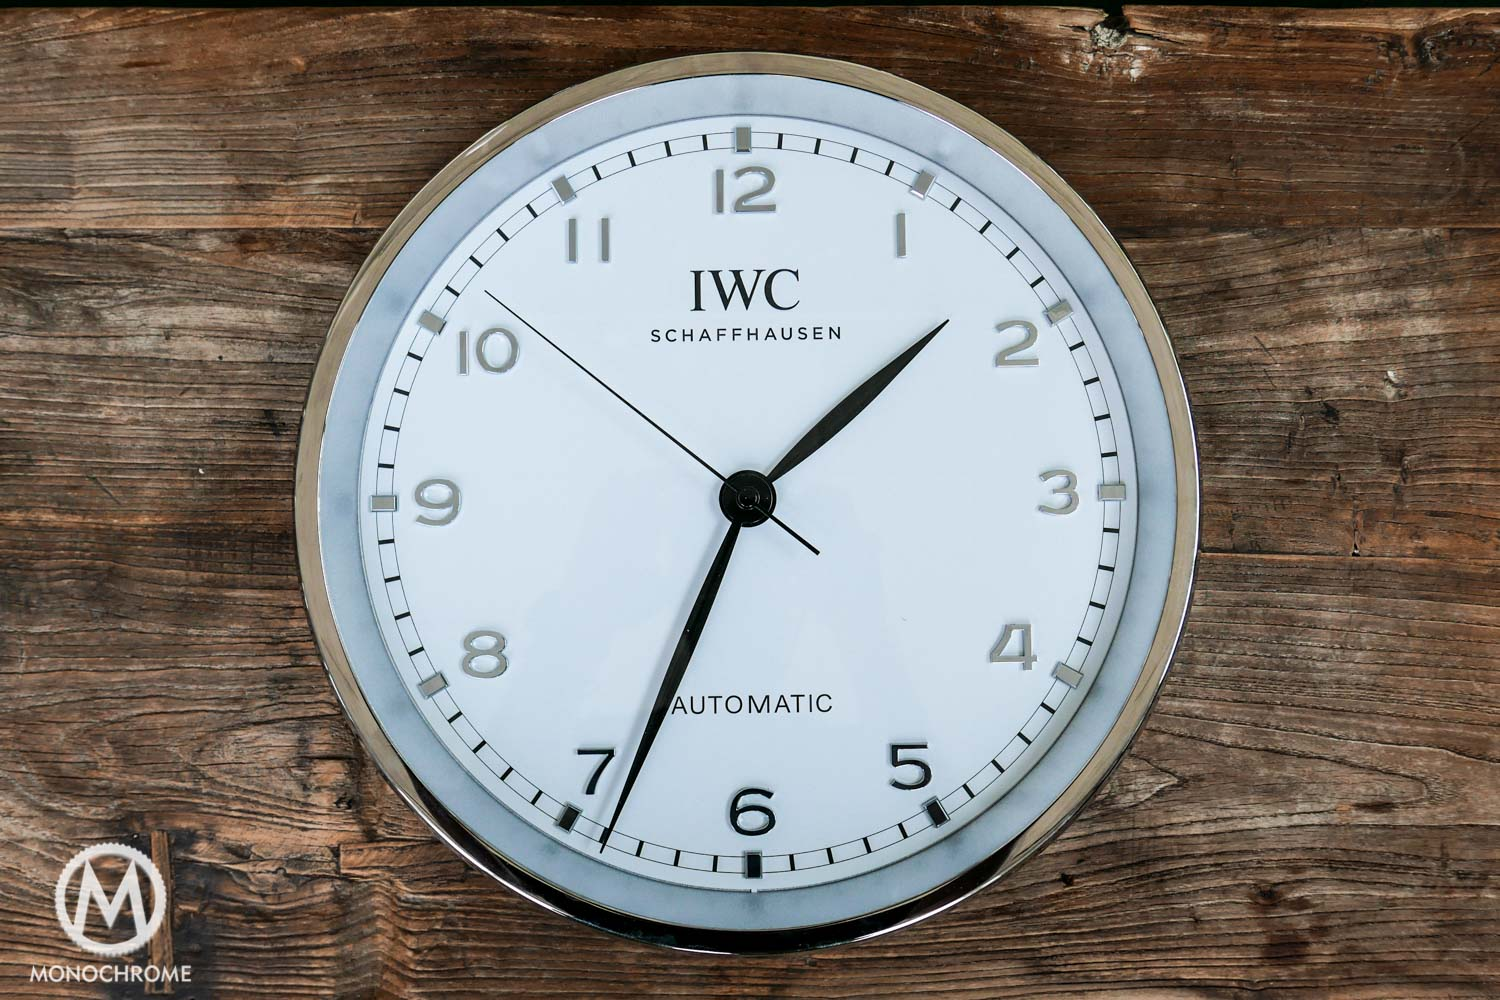 iwc wall clock